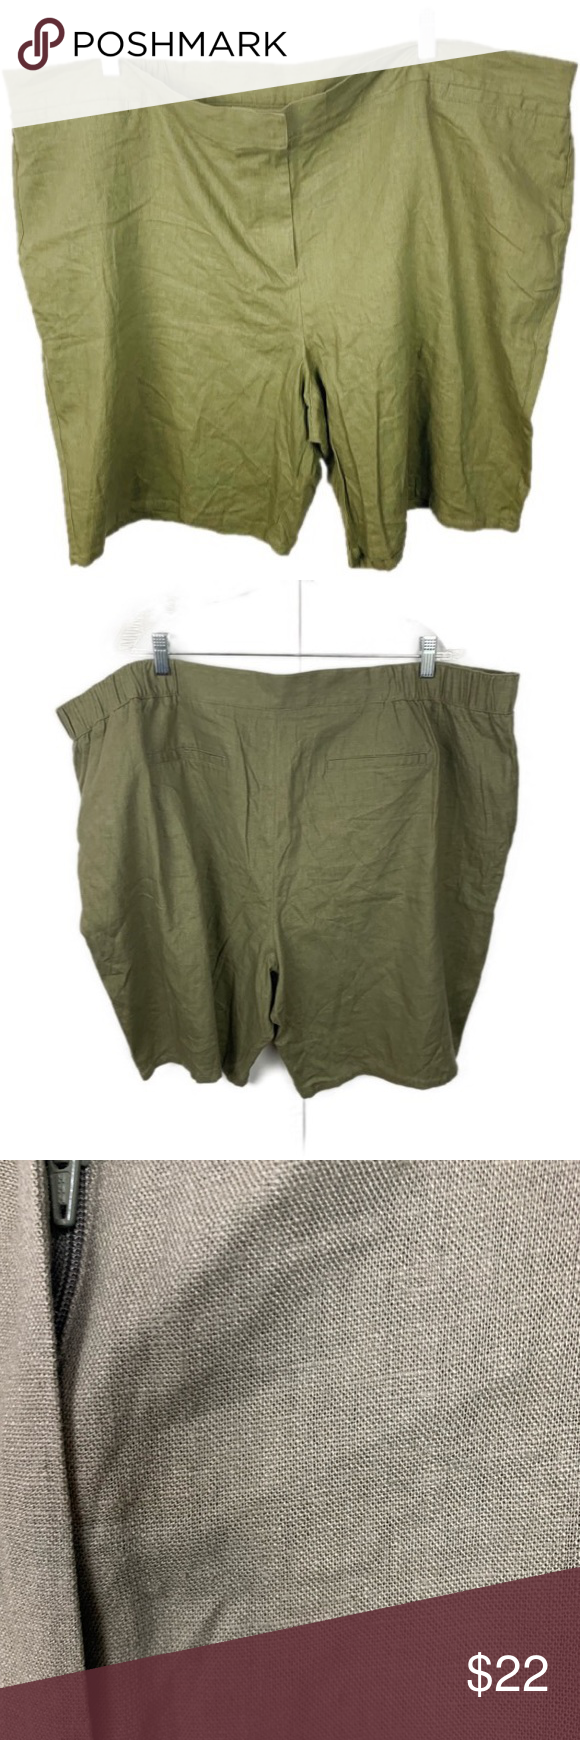 8e57763c4d6 Jaclyn Smith Shorts Green Linen Blend Plus Size 3X Jaclyn Smith Womens  Shorts Green Linen Blend